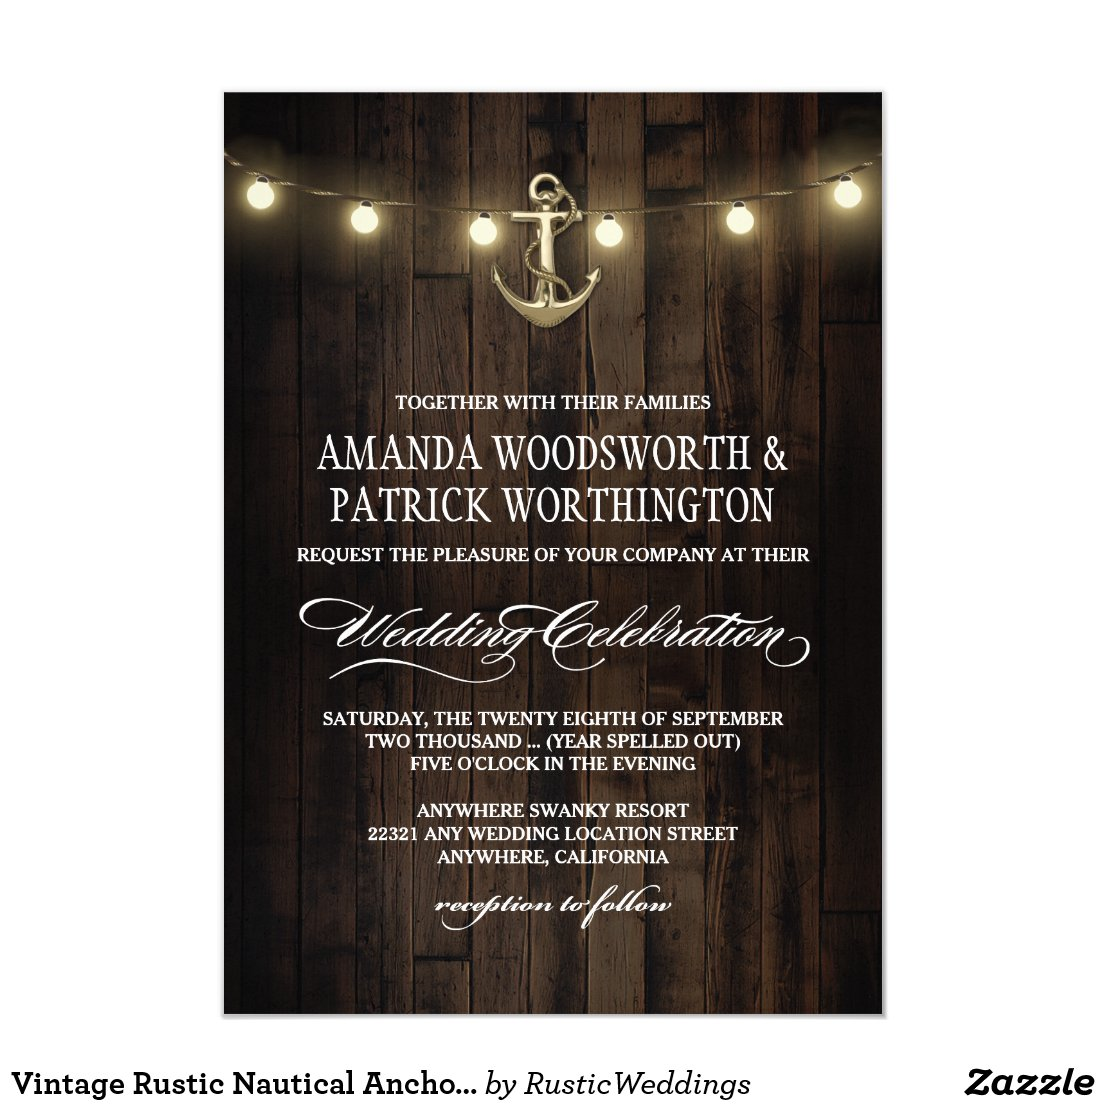 Vintage Rustic Nautical Anchor Wedding Invitations